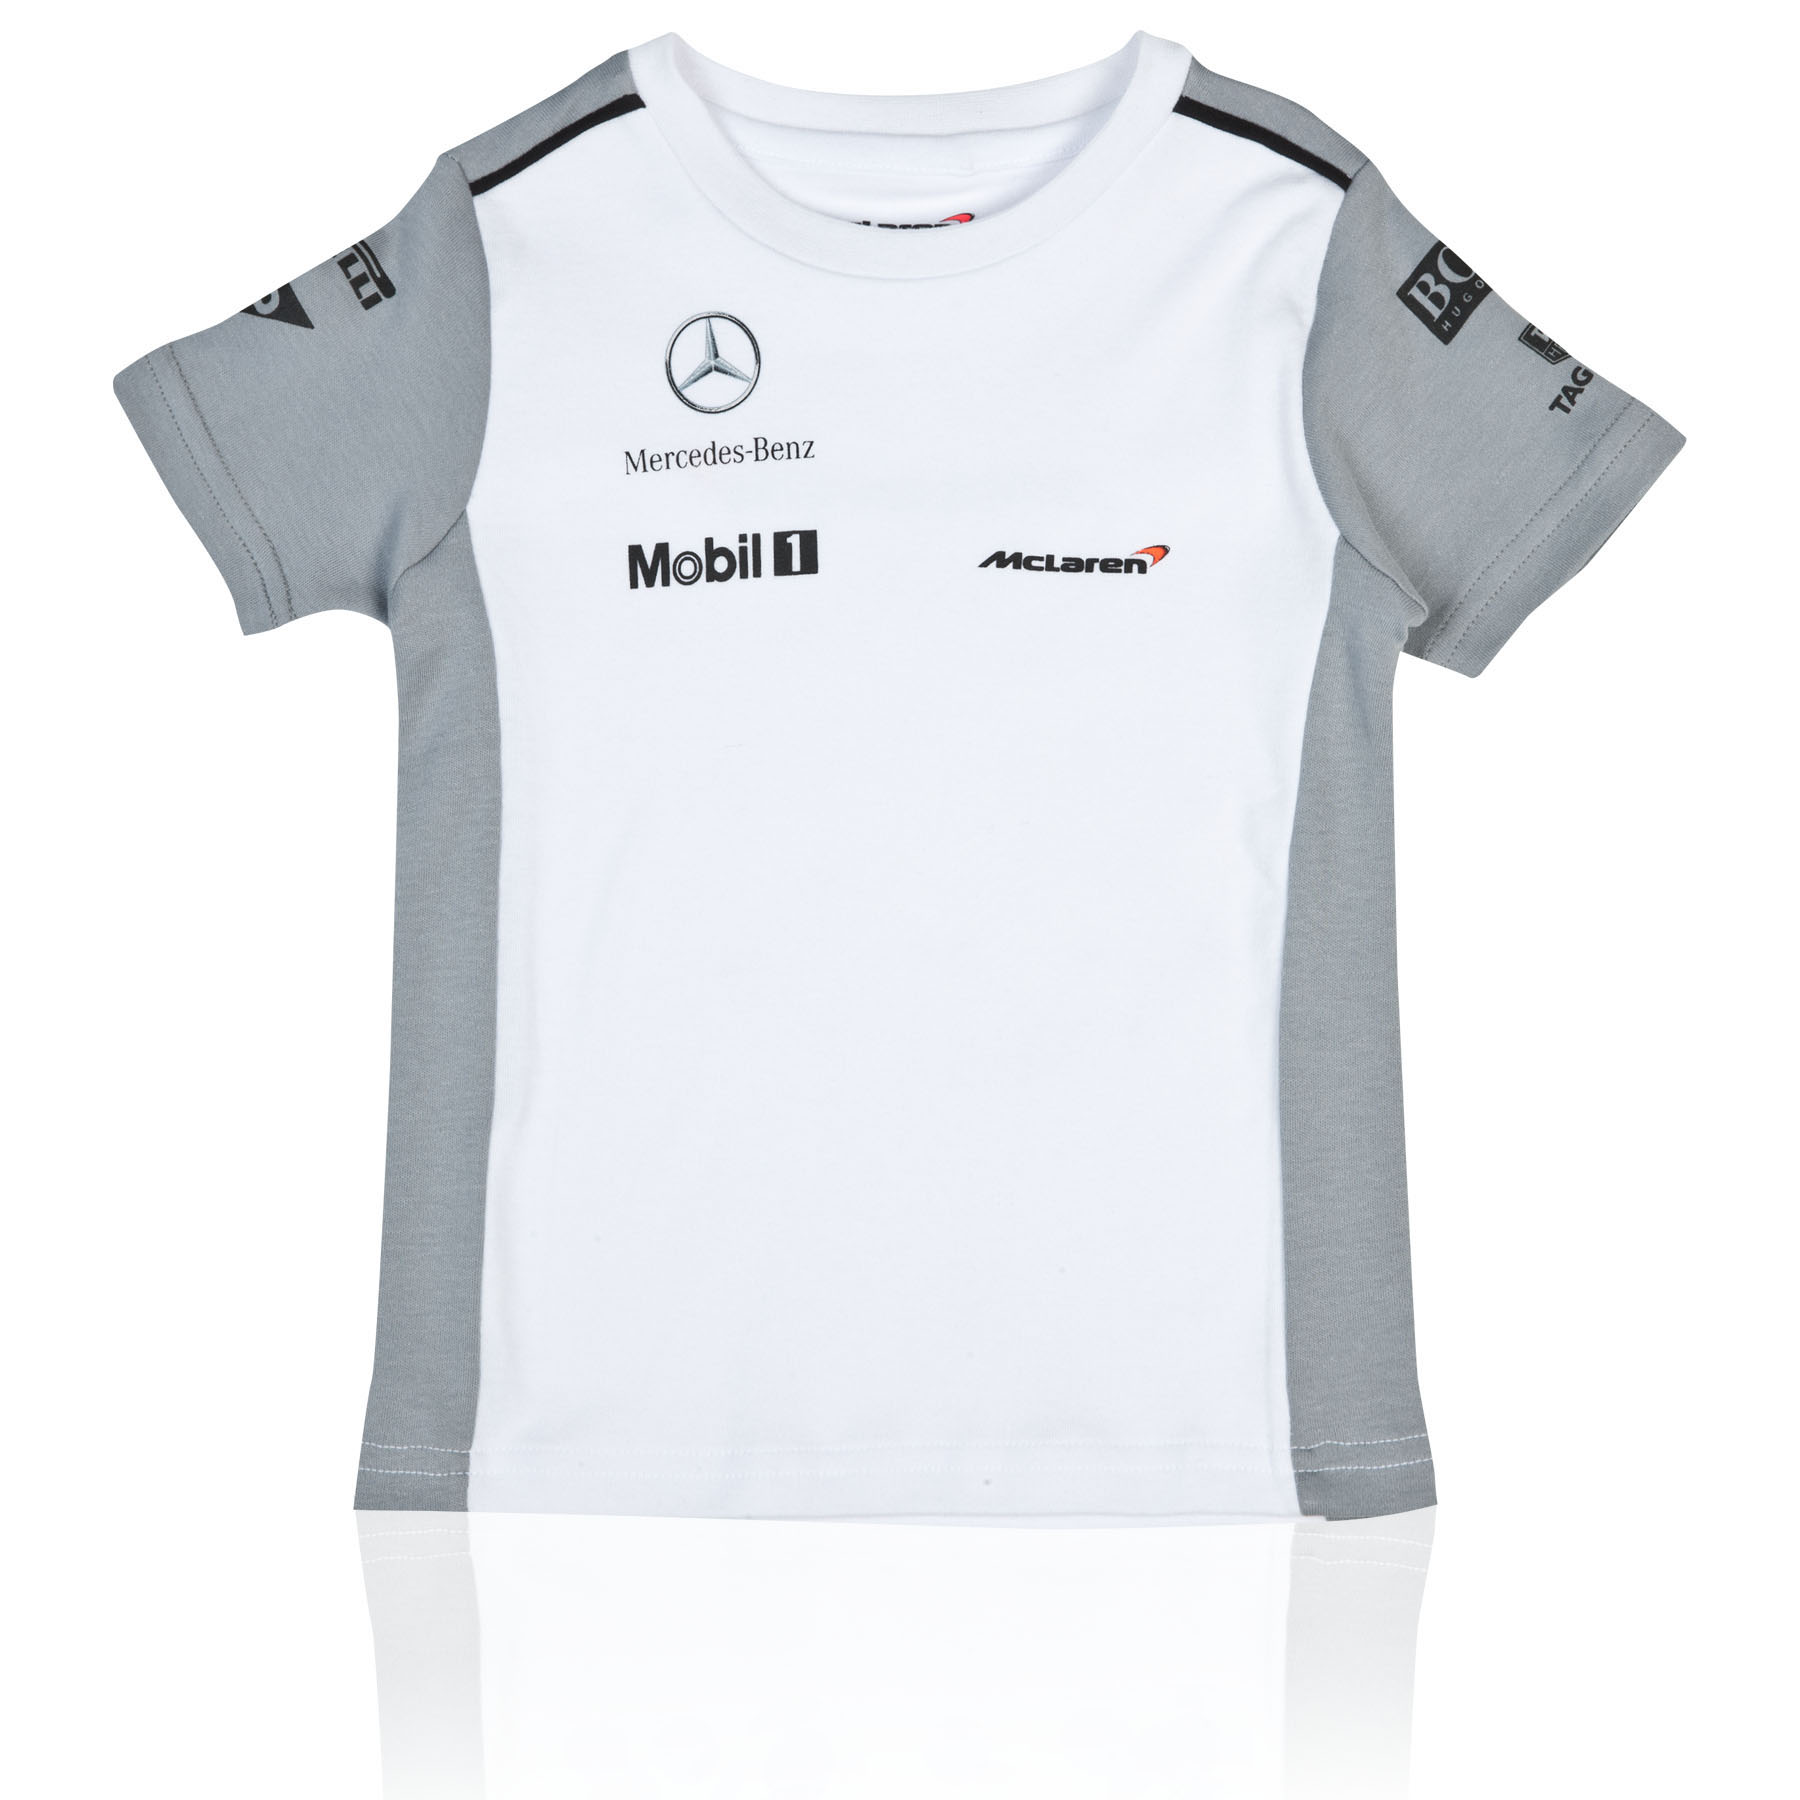 Formula 1|Gifts for Children McLaren Mercedes 2014 Team T-Shirt - Baby